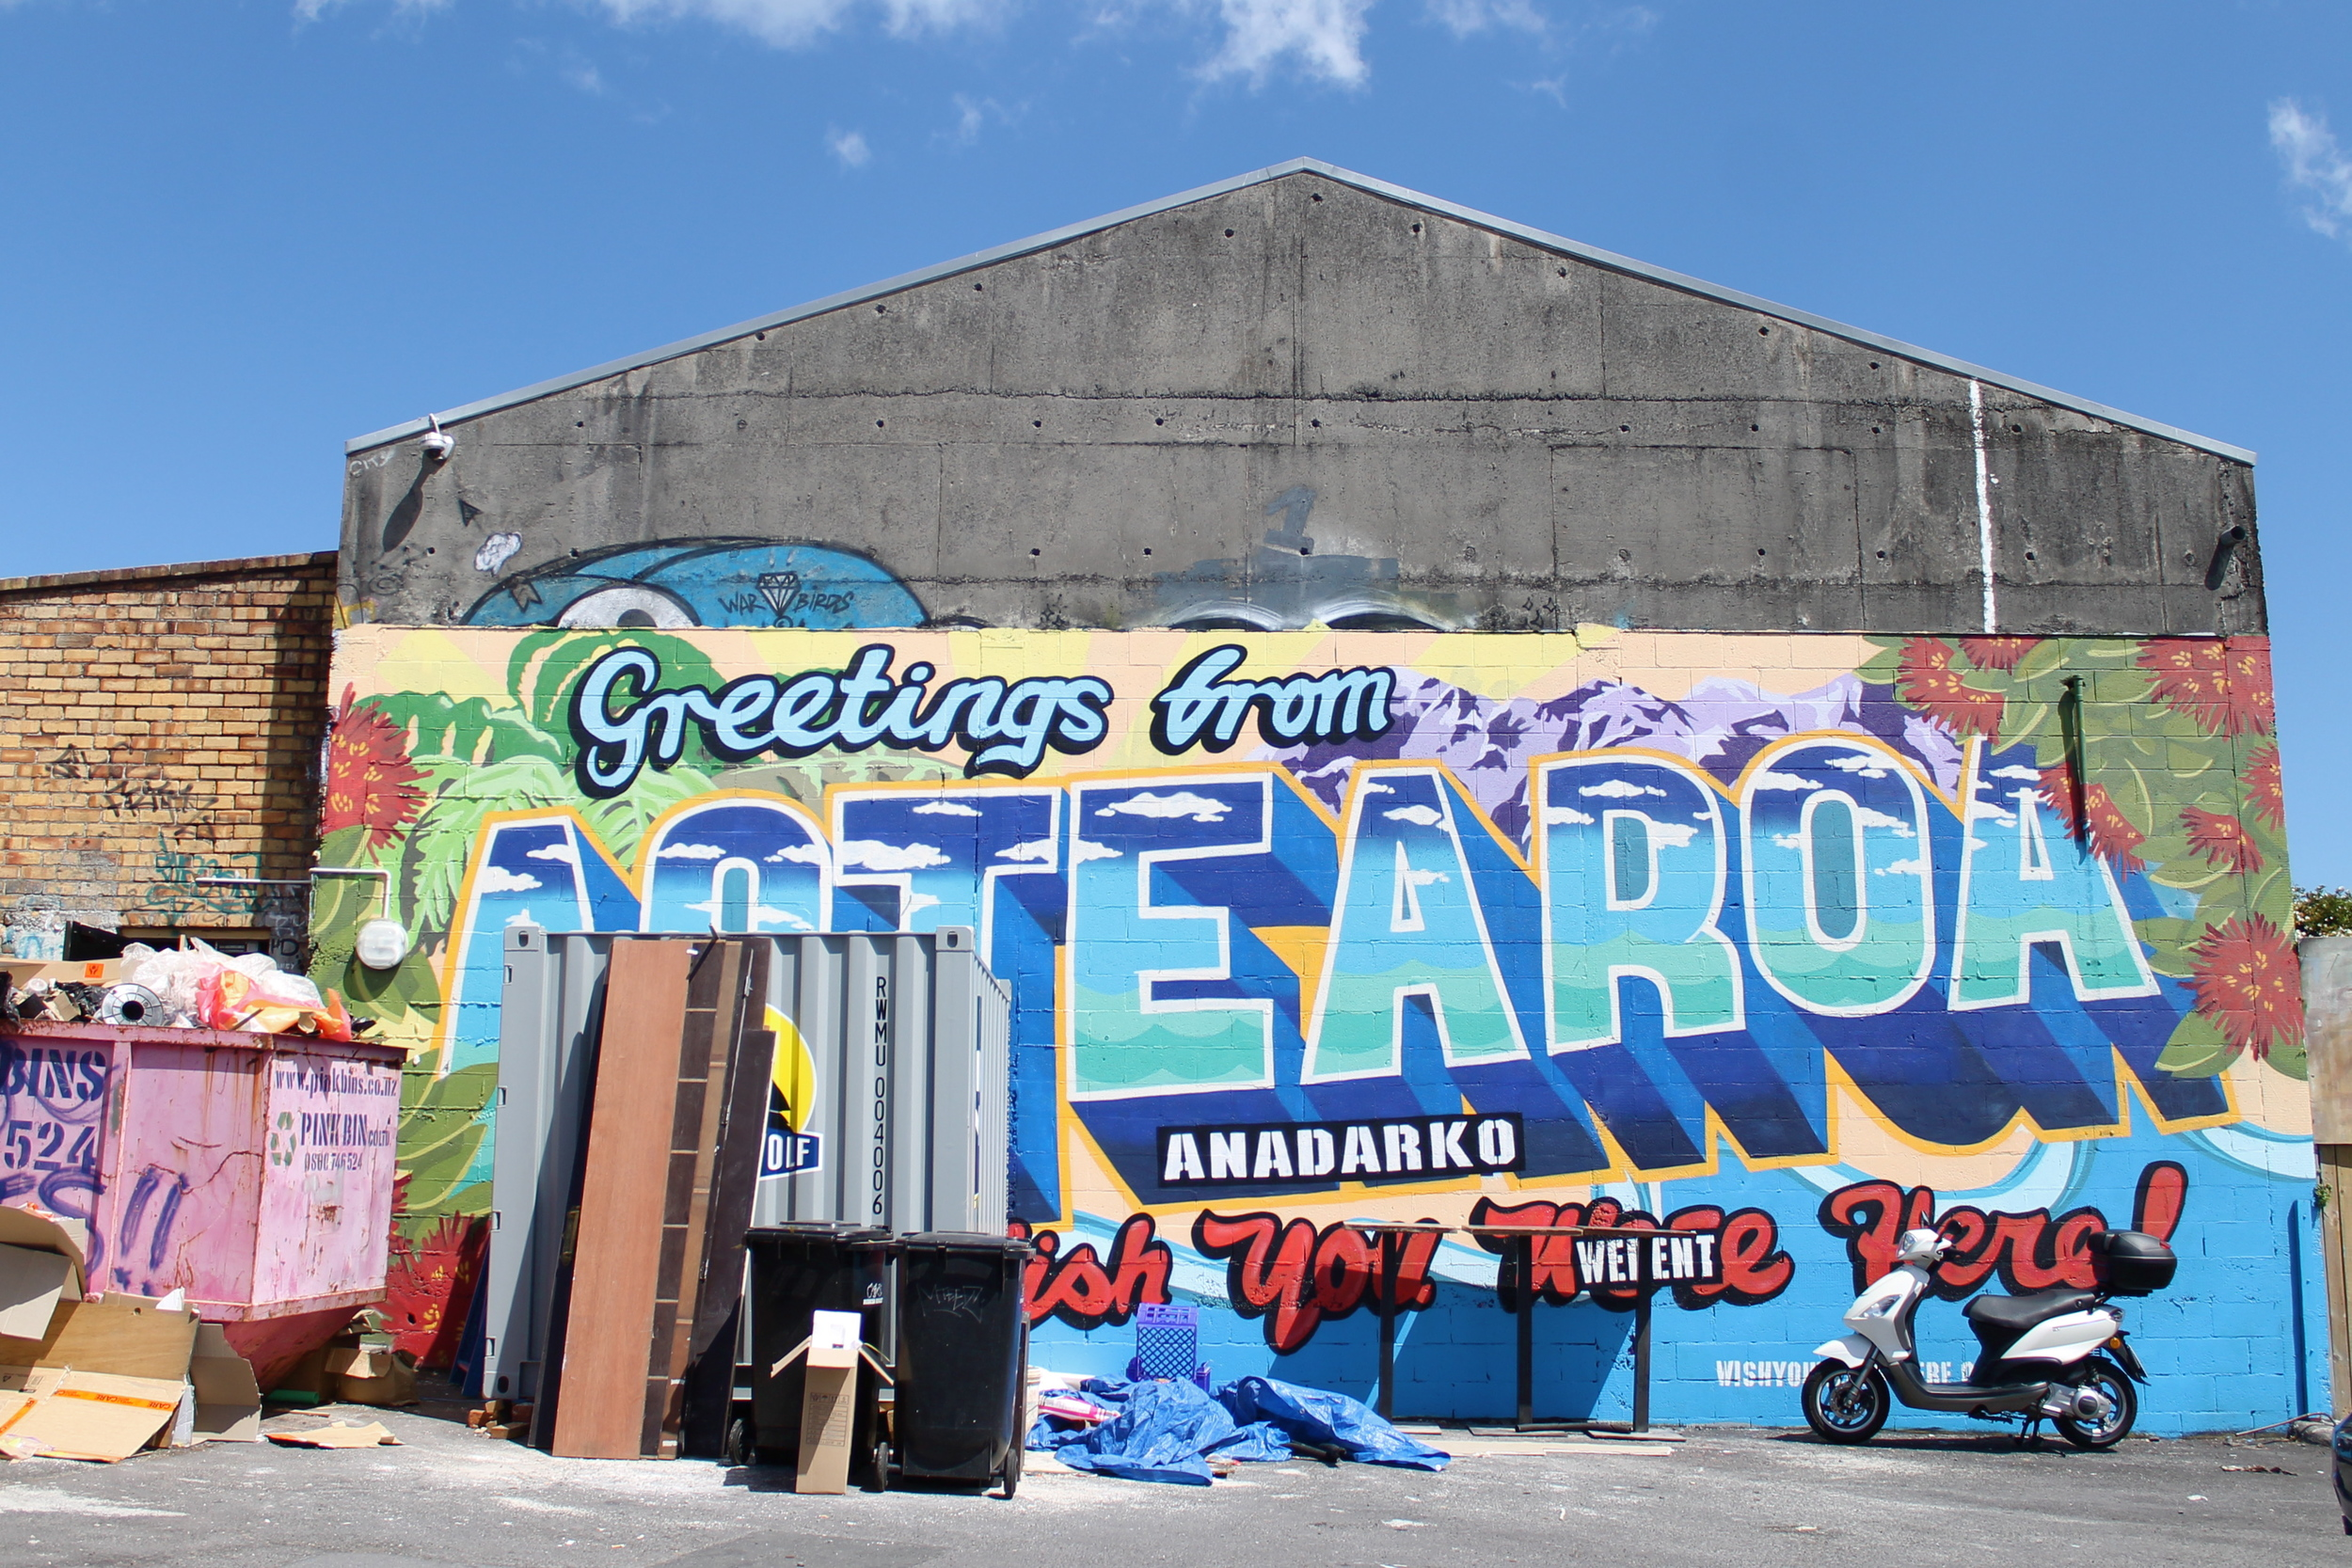 """Aotearoa = Maori word for """"New Zealand"""". Literally meaning, """"land of the long white cloud"""" because of the shape of the 2 islands. Bit of a mixed message from this graffiti..."""